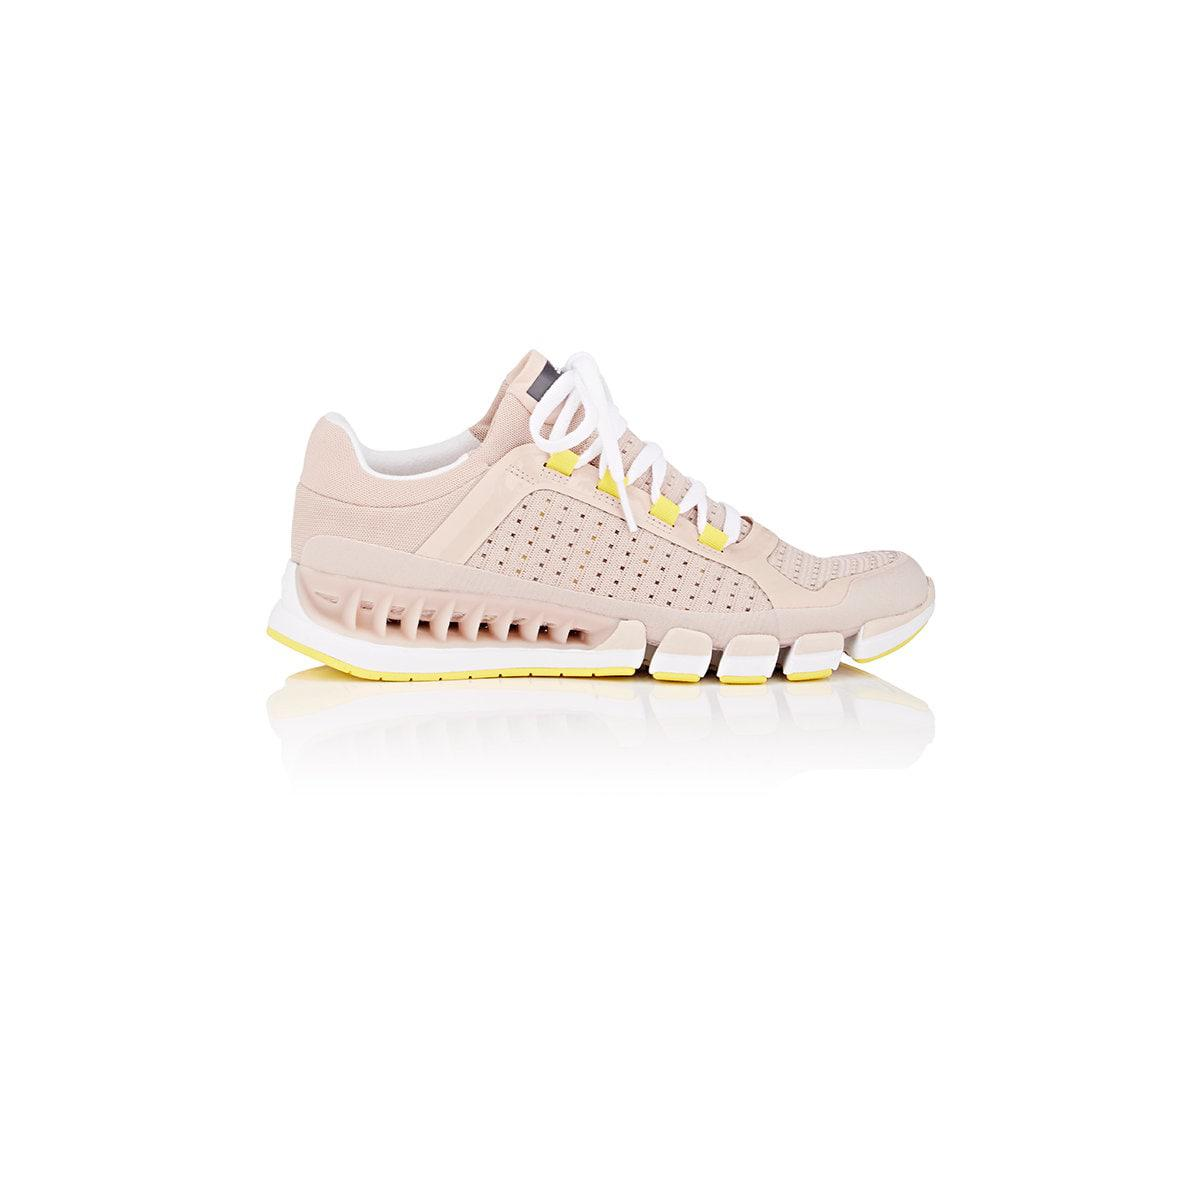 new product 63b90 19b76 Adidas By Stella McCartney Pink Climacool Revolution Sneakers